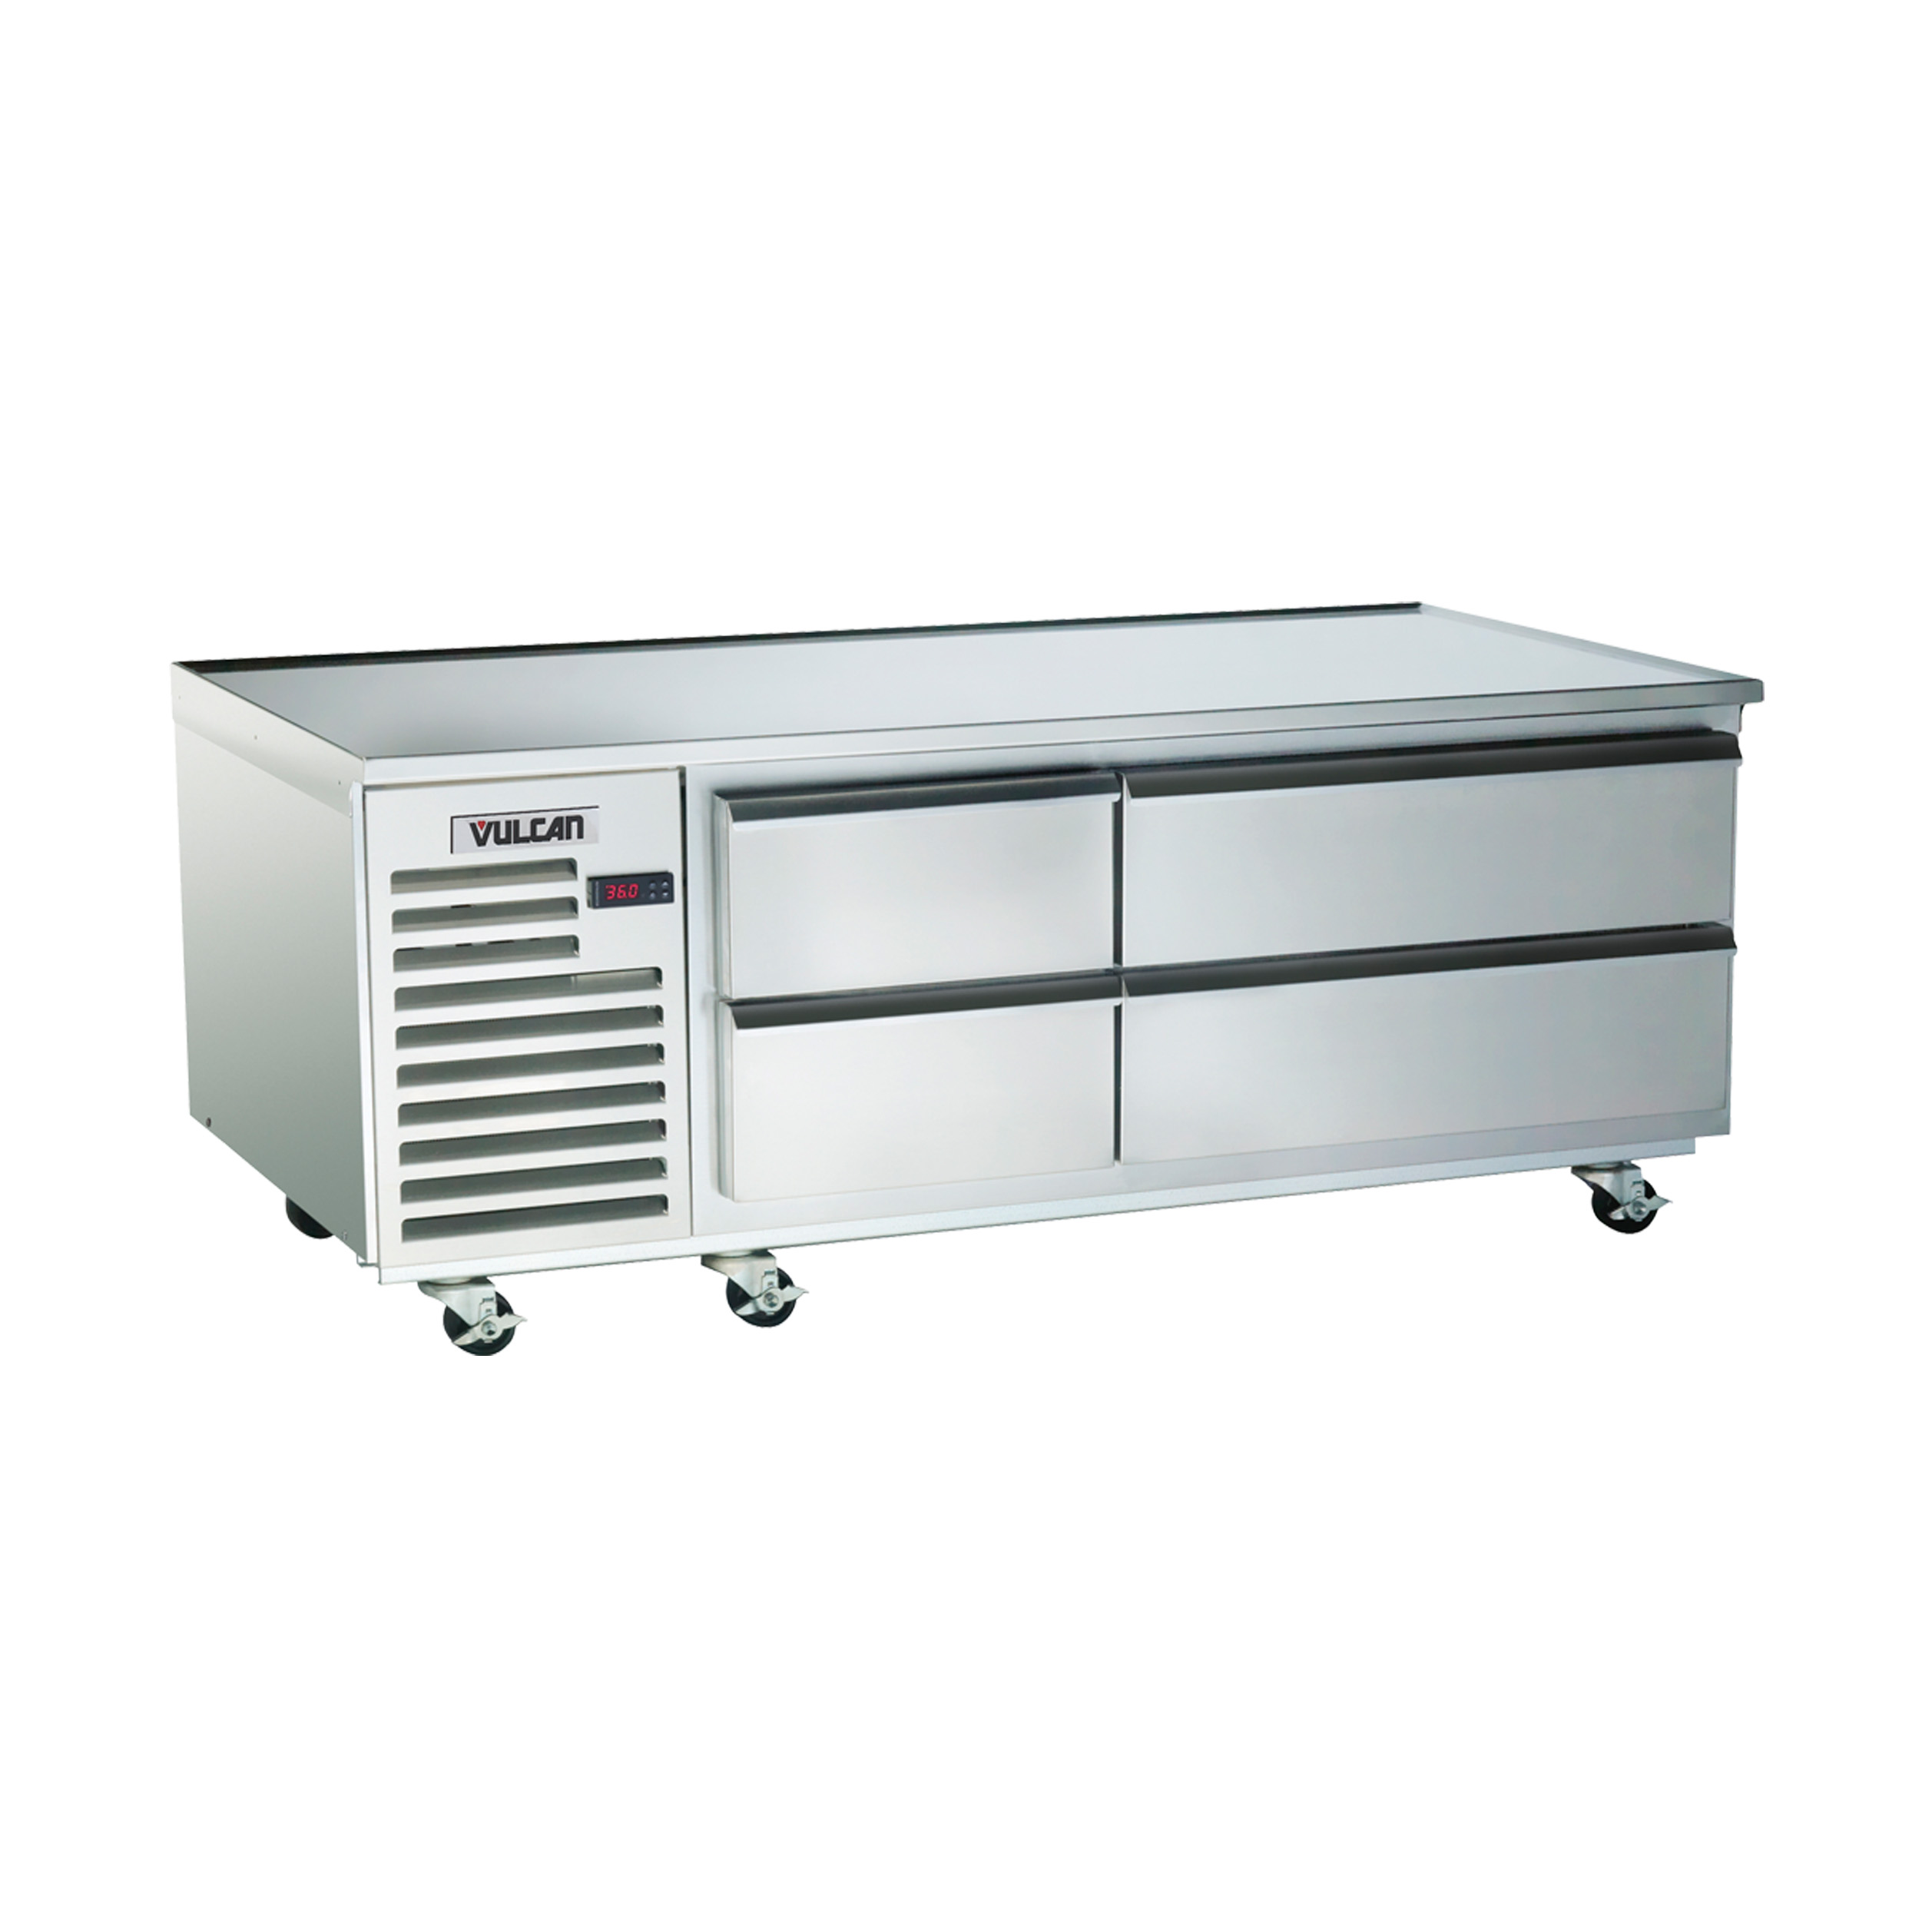 Vulcan VSC72 equipment stand, refrigerated base